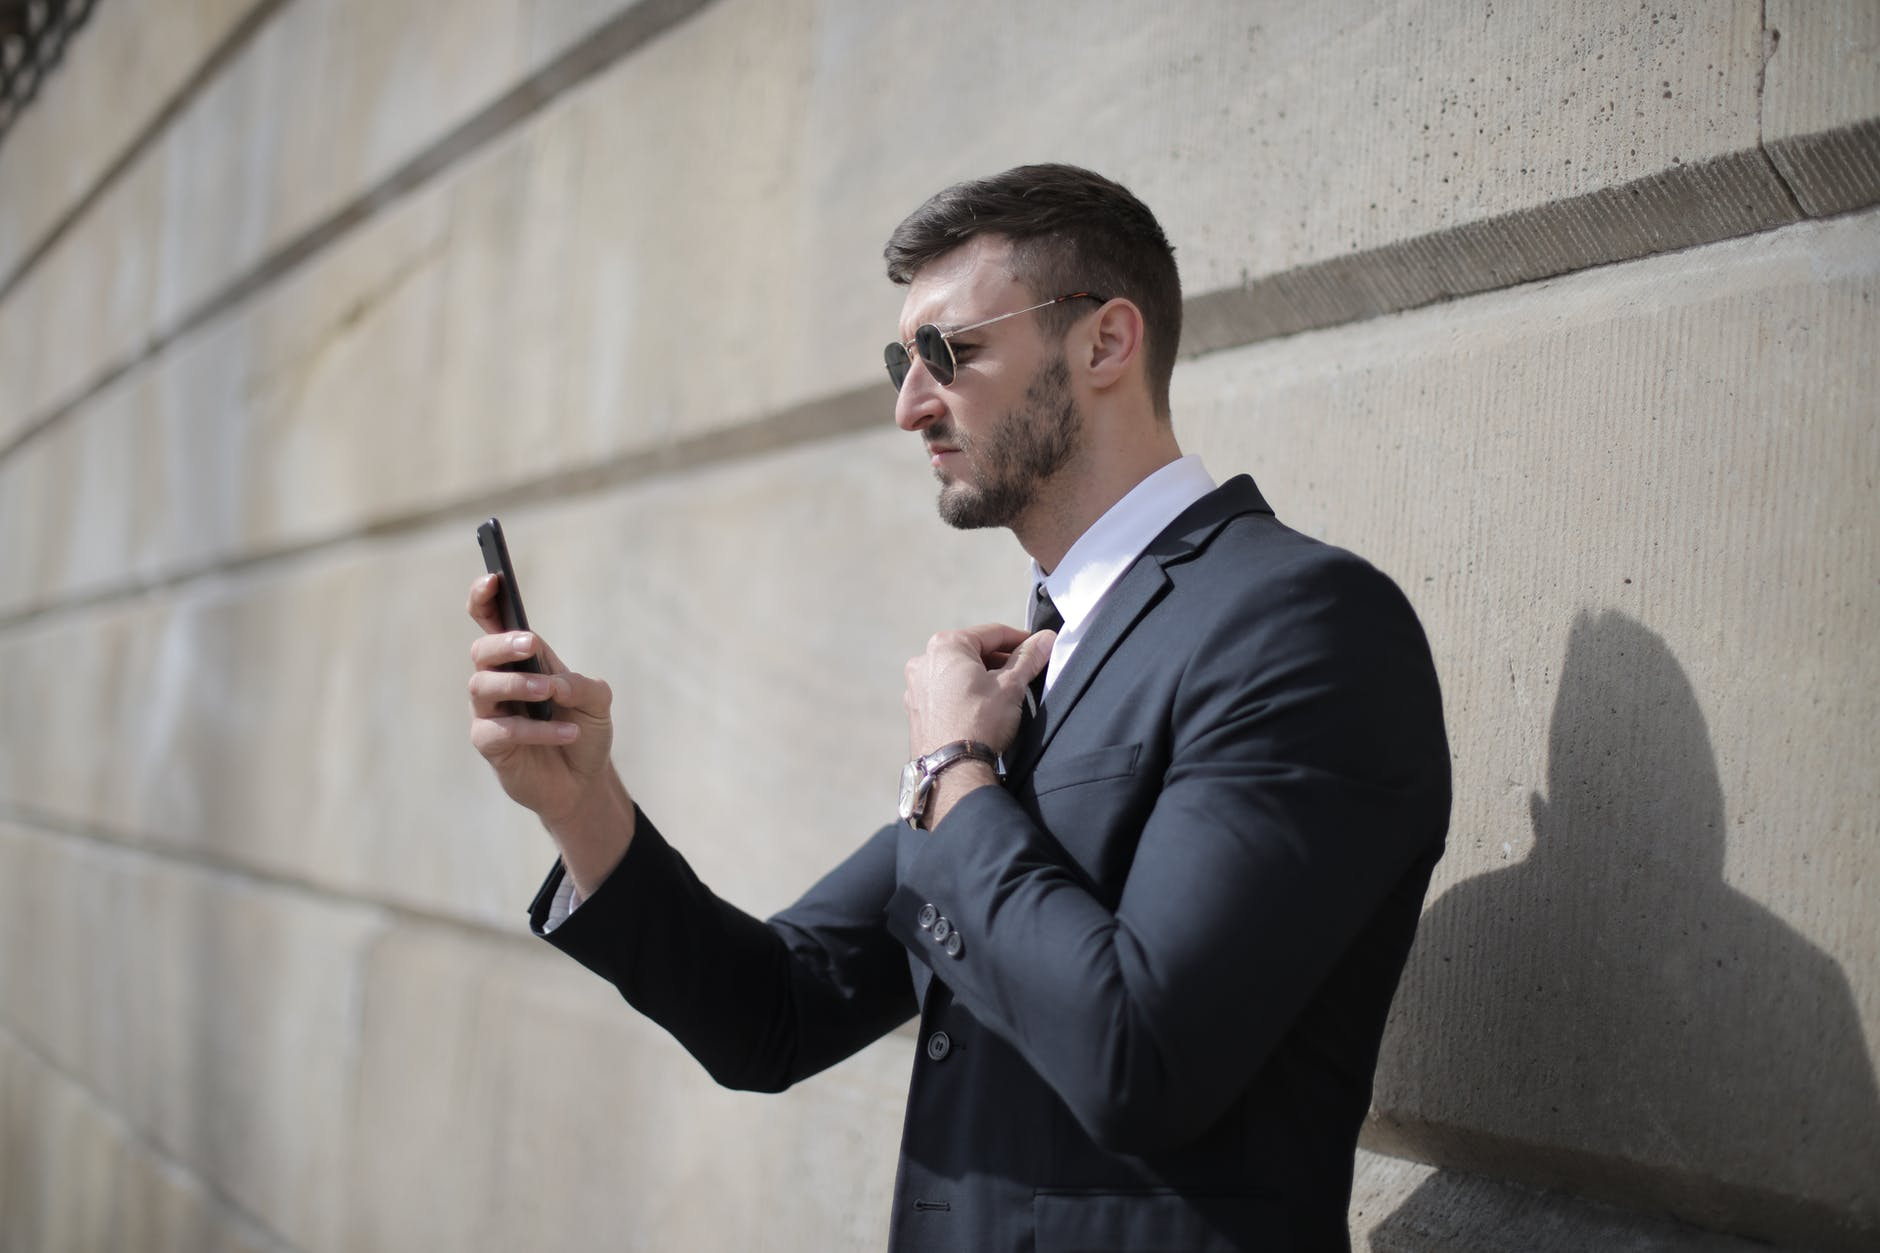 Man in a suit with his phone   Source: Pexels